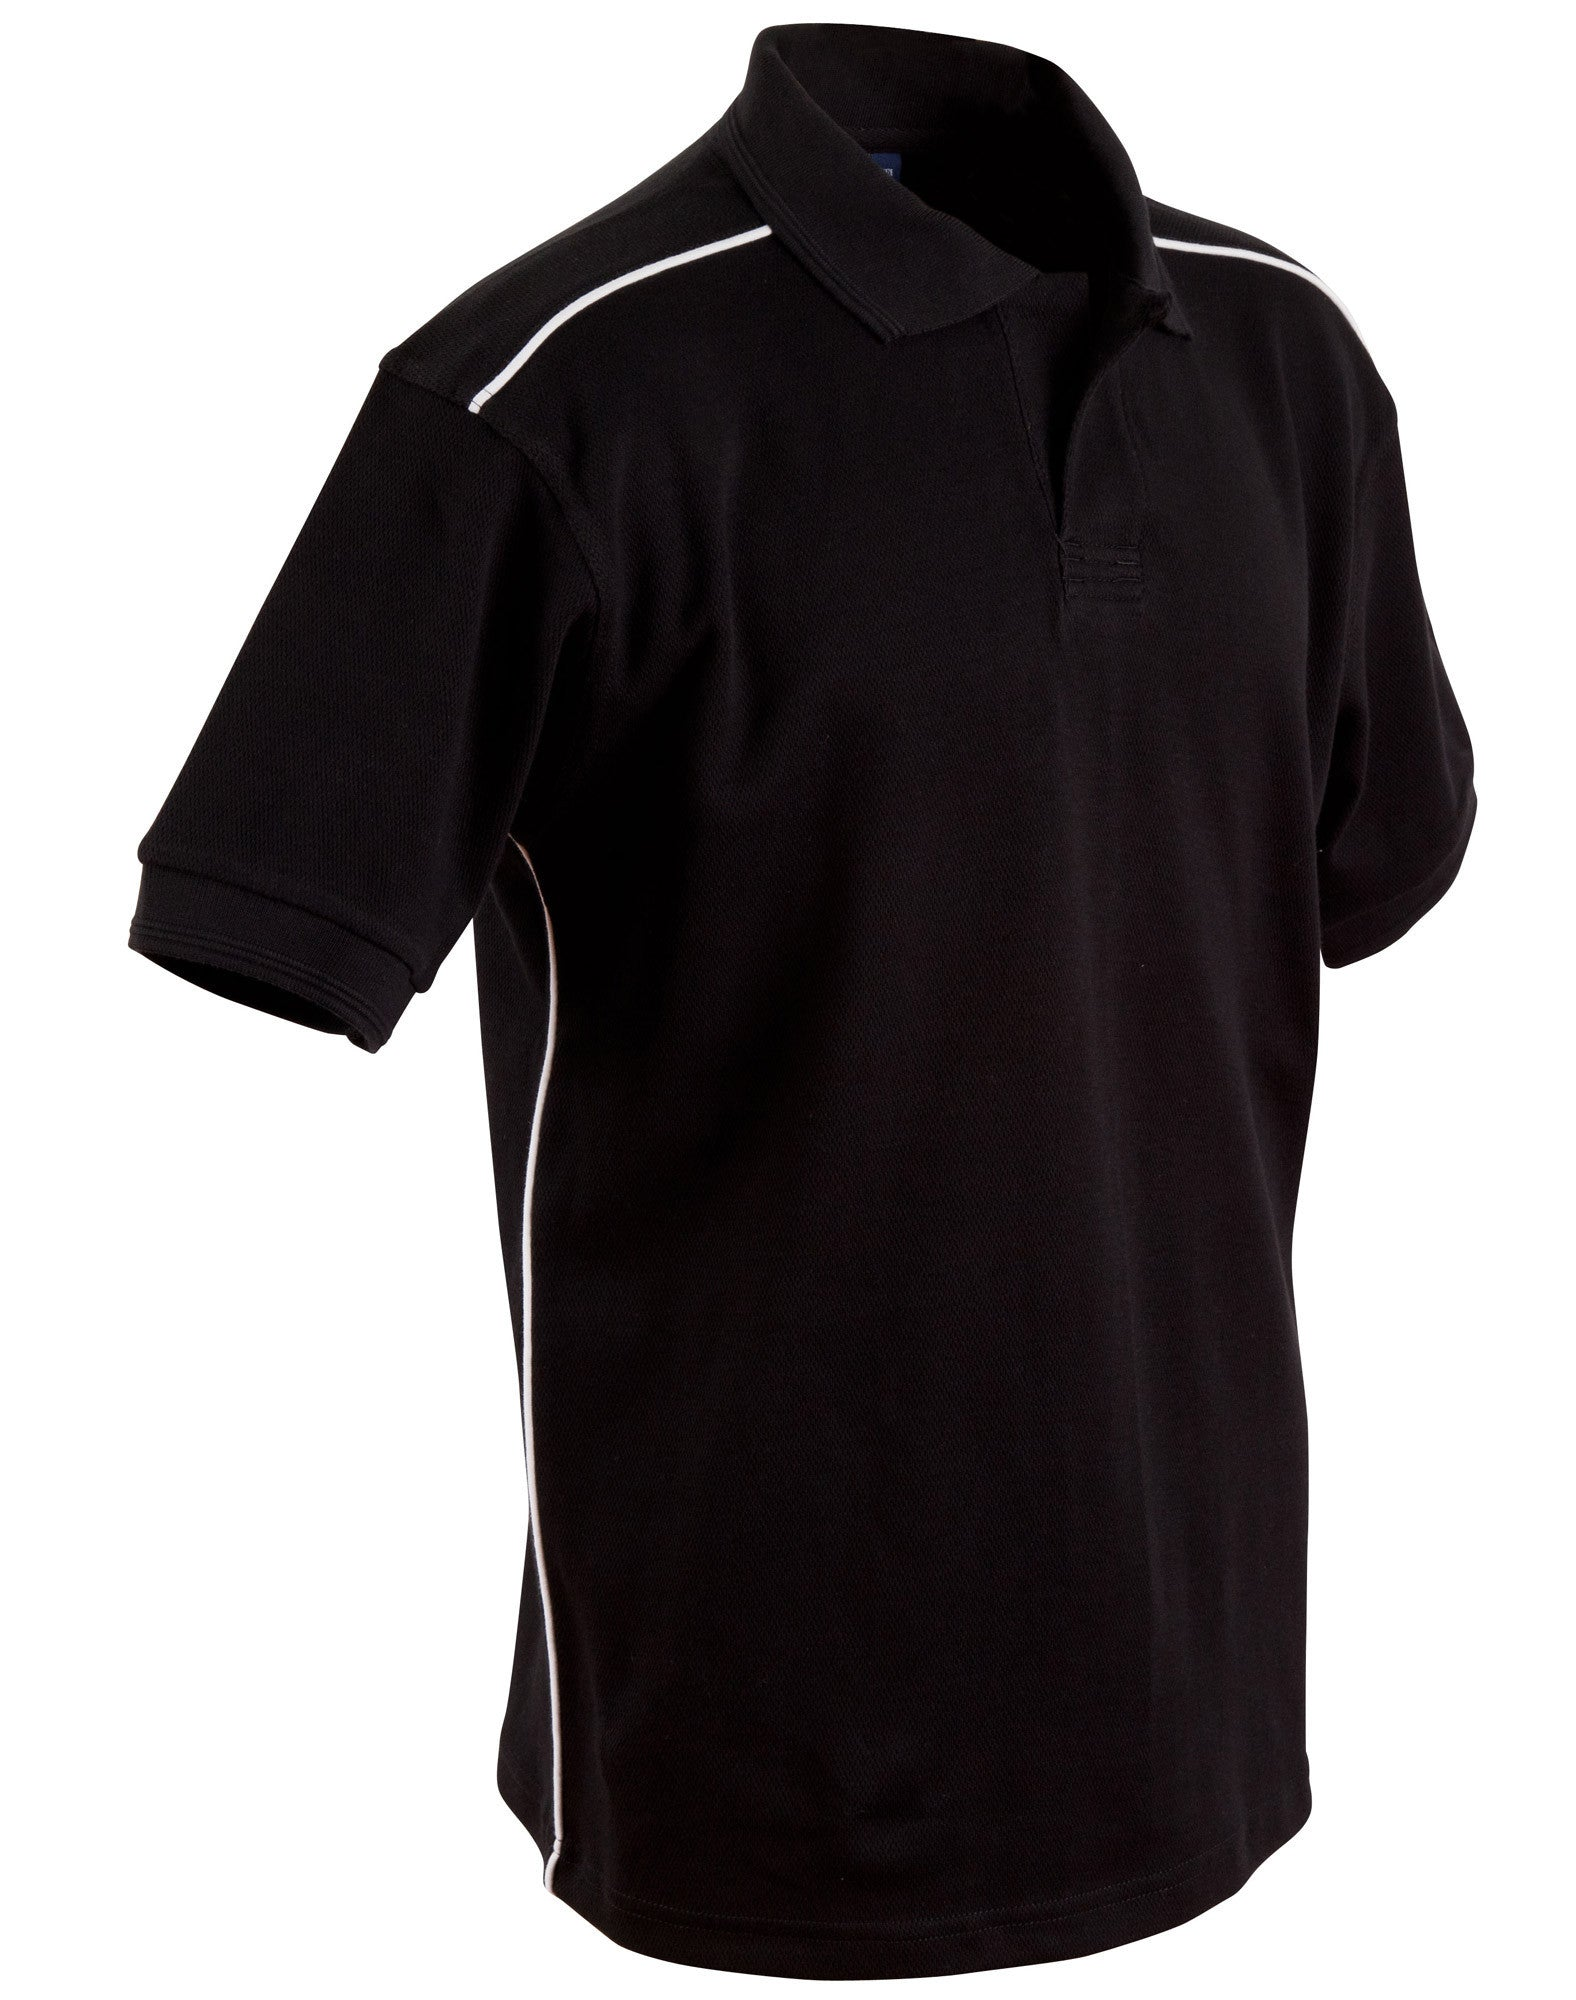 Winning Spirit Men's Pure Cotton Contrast Piping Short Sleeve Polo (PS25)